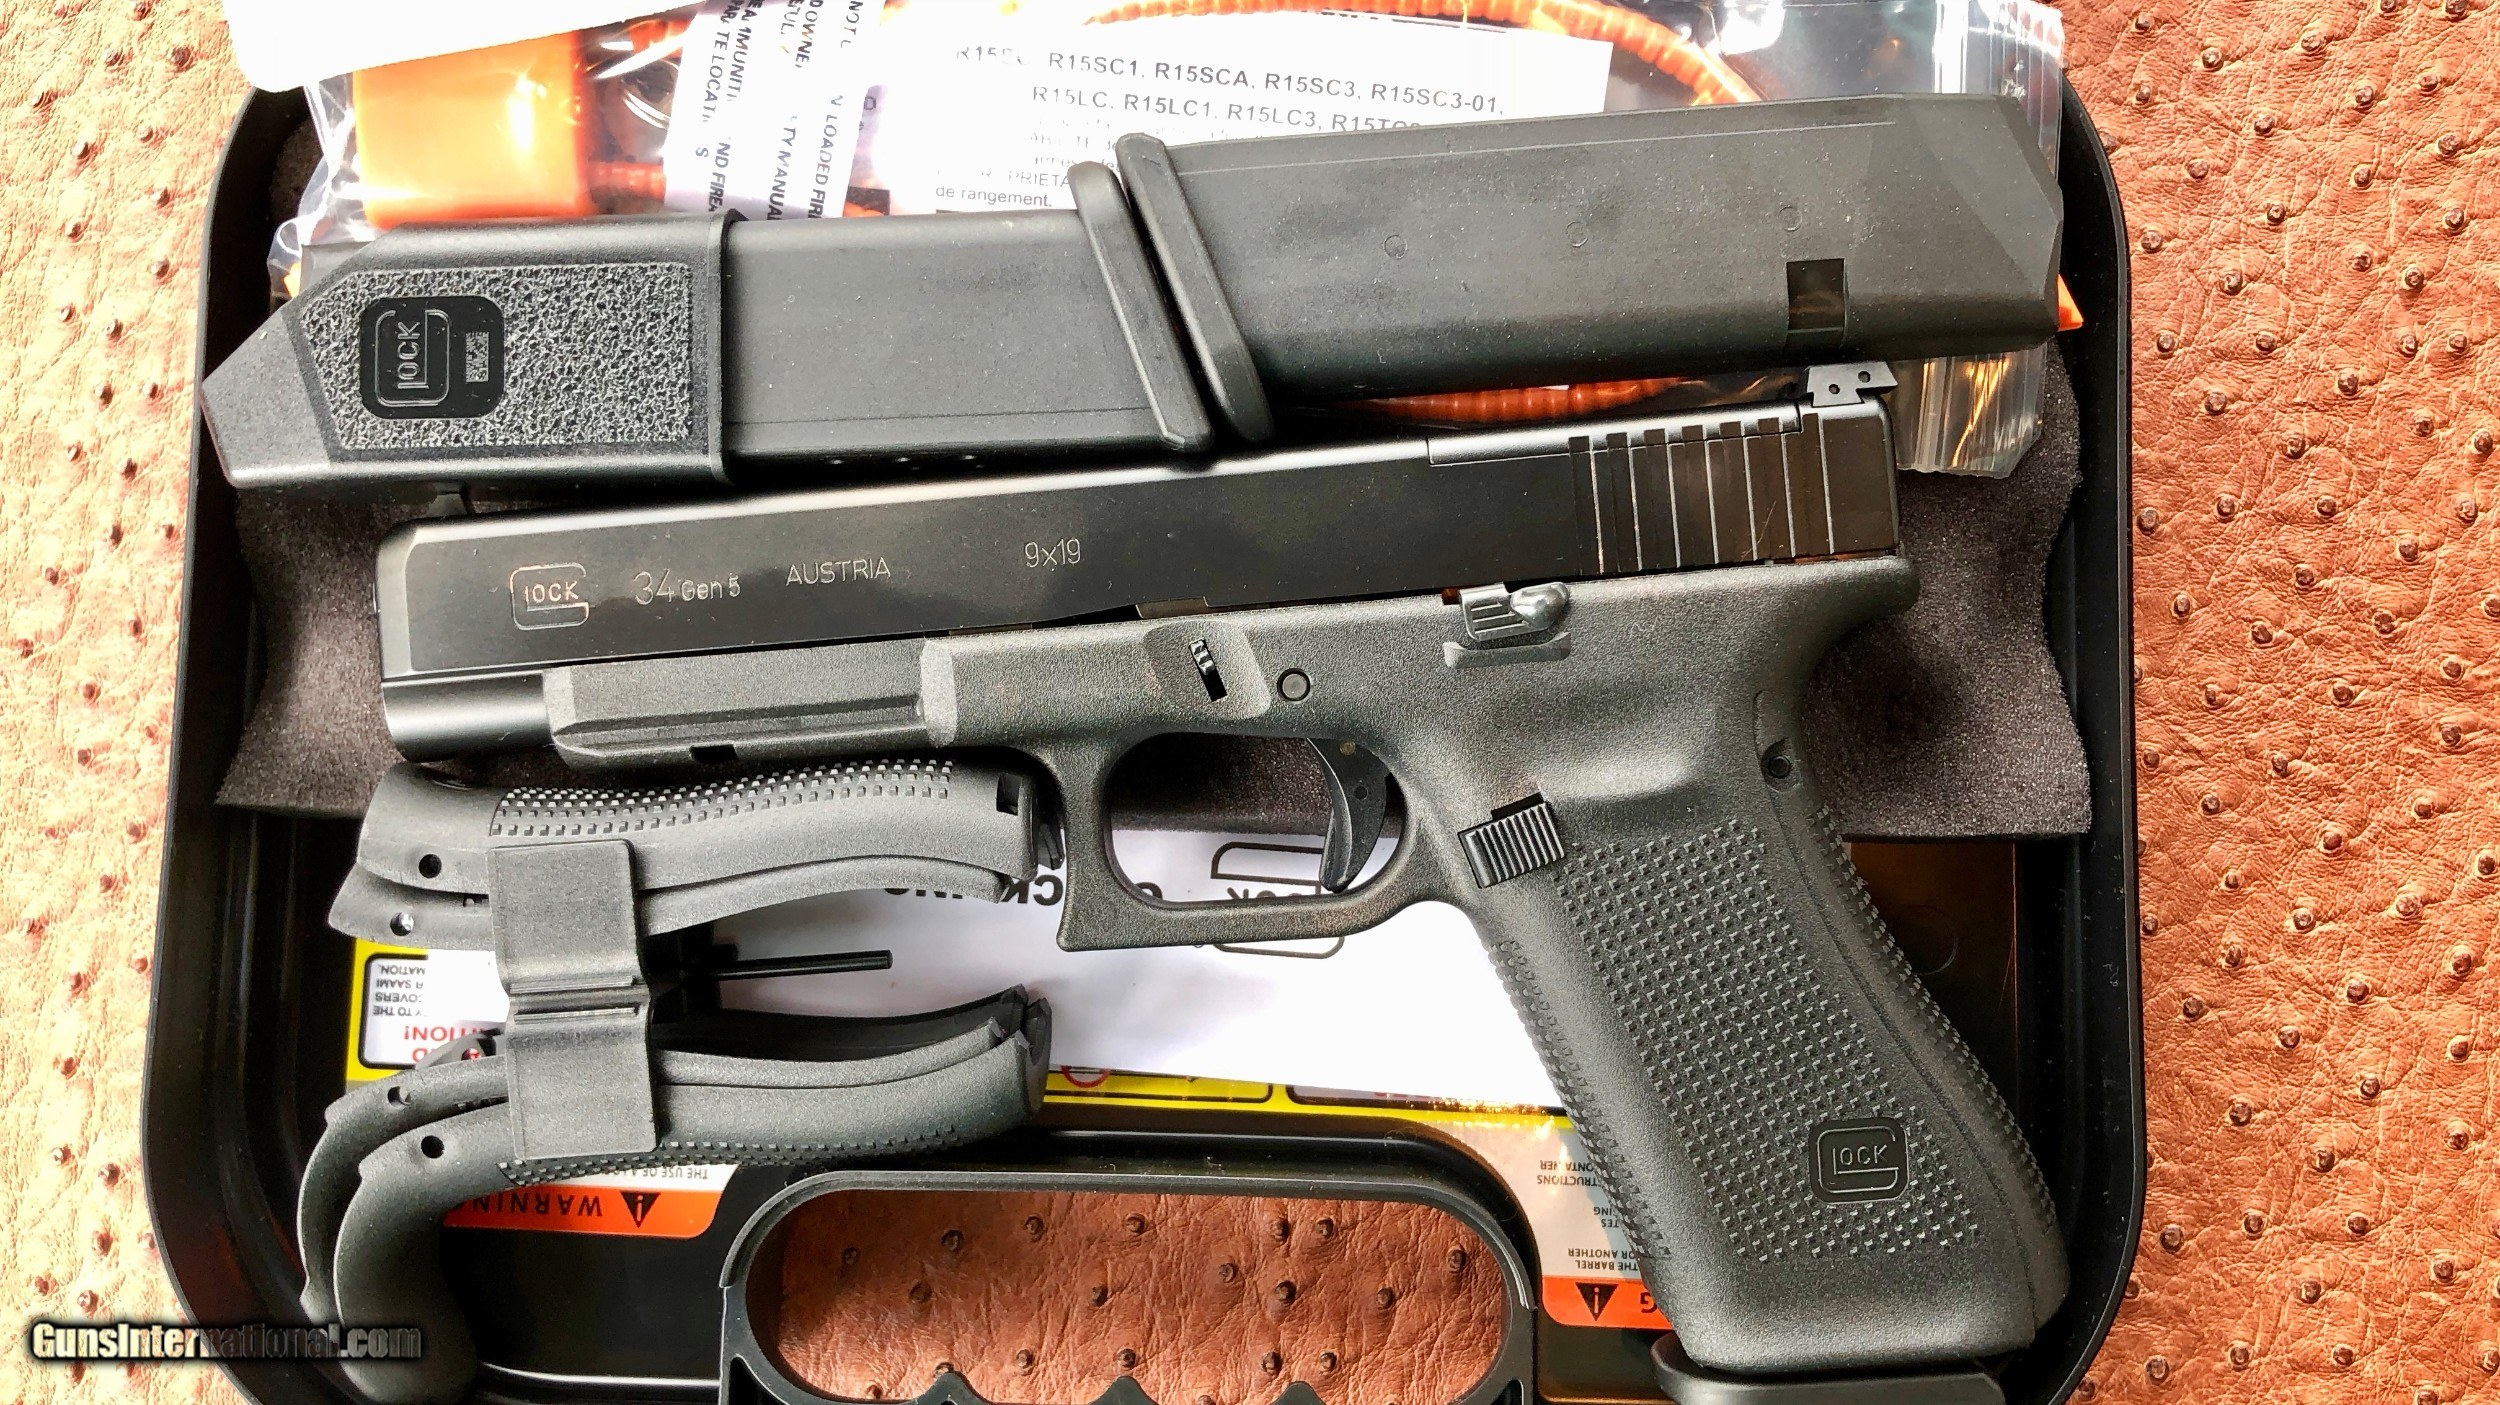 Glock 34 Gen 5 Mos This is a brand new in the box glock 34. glock 34 gen 5 mos